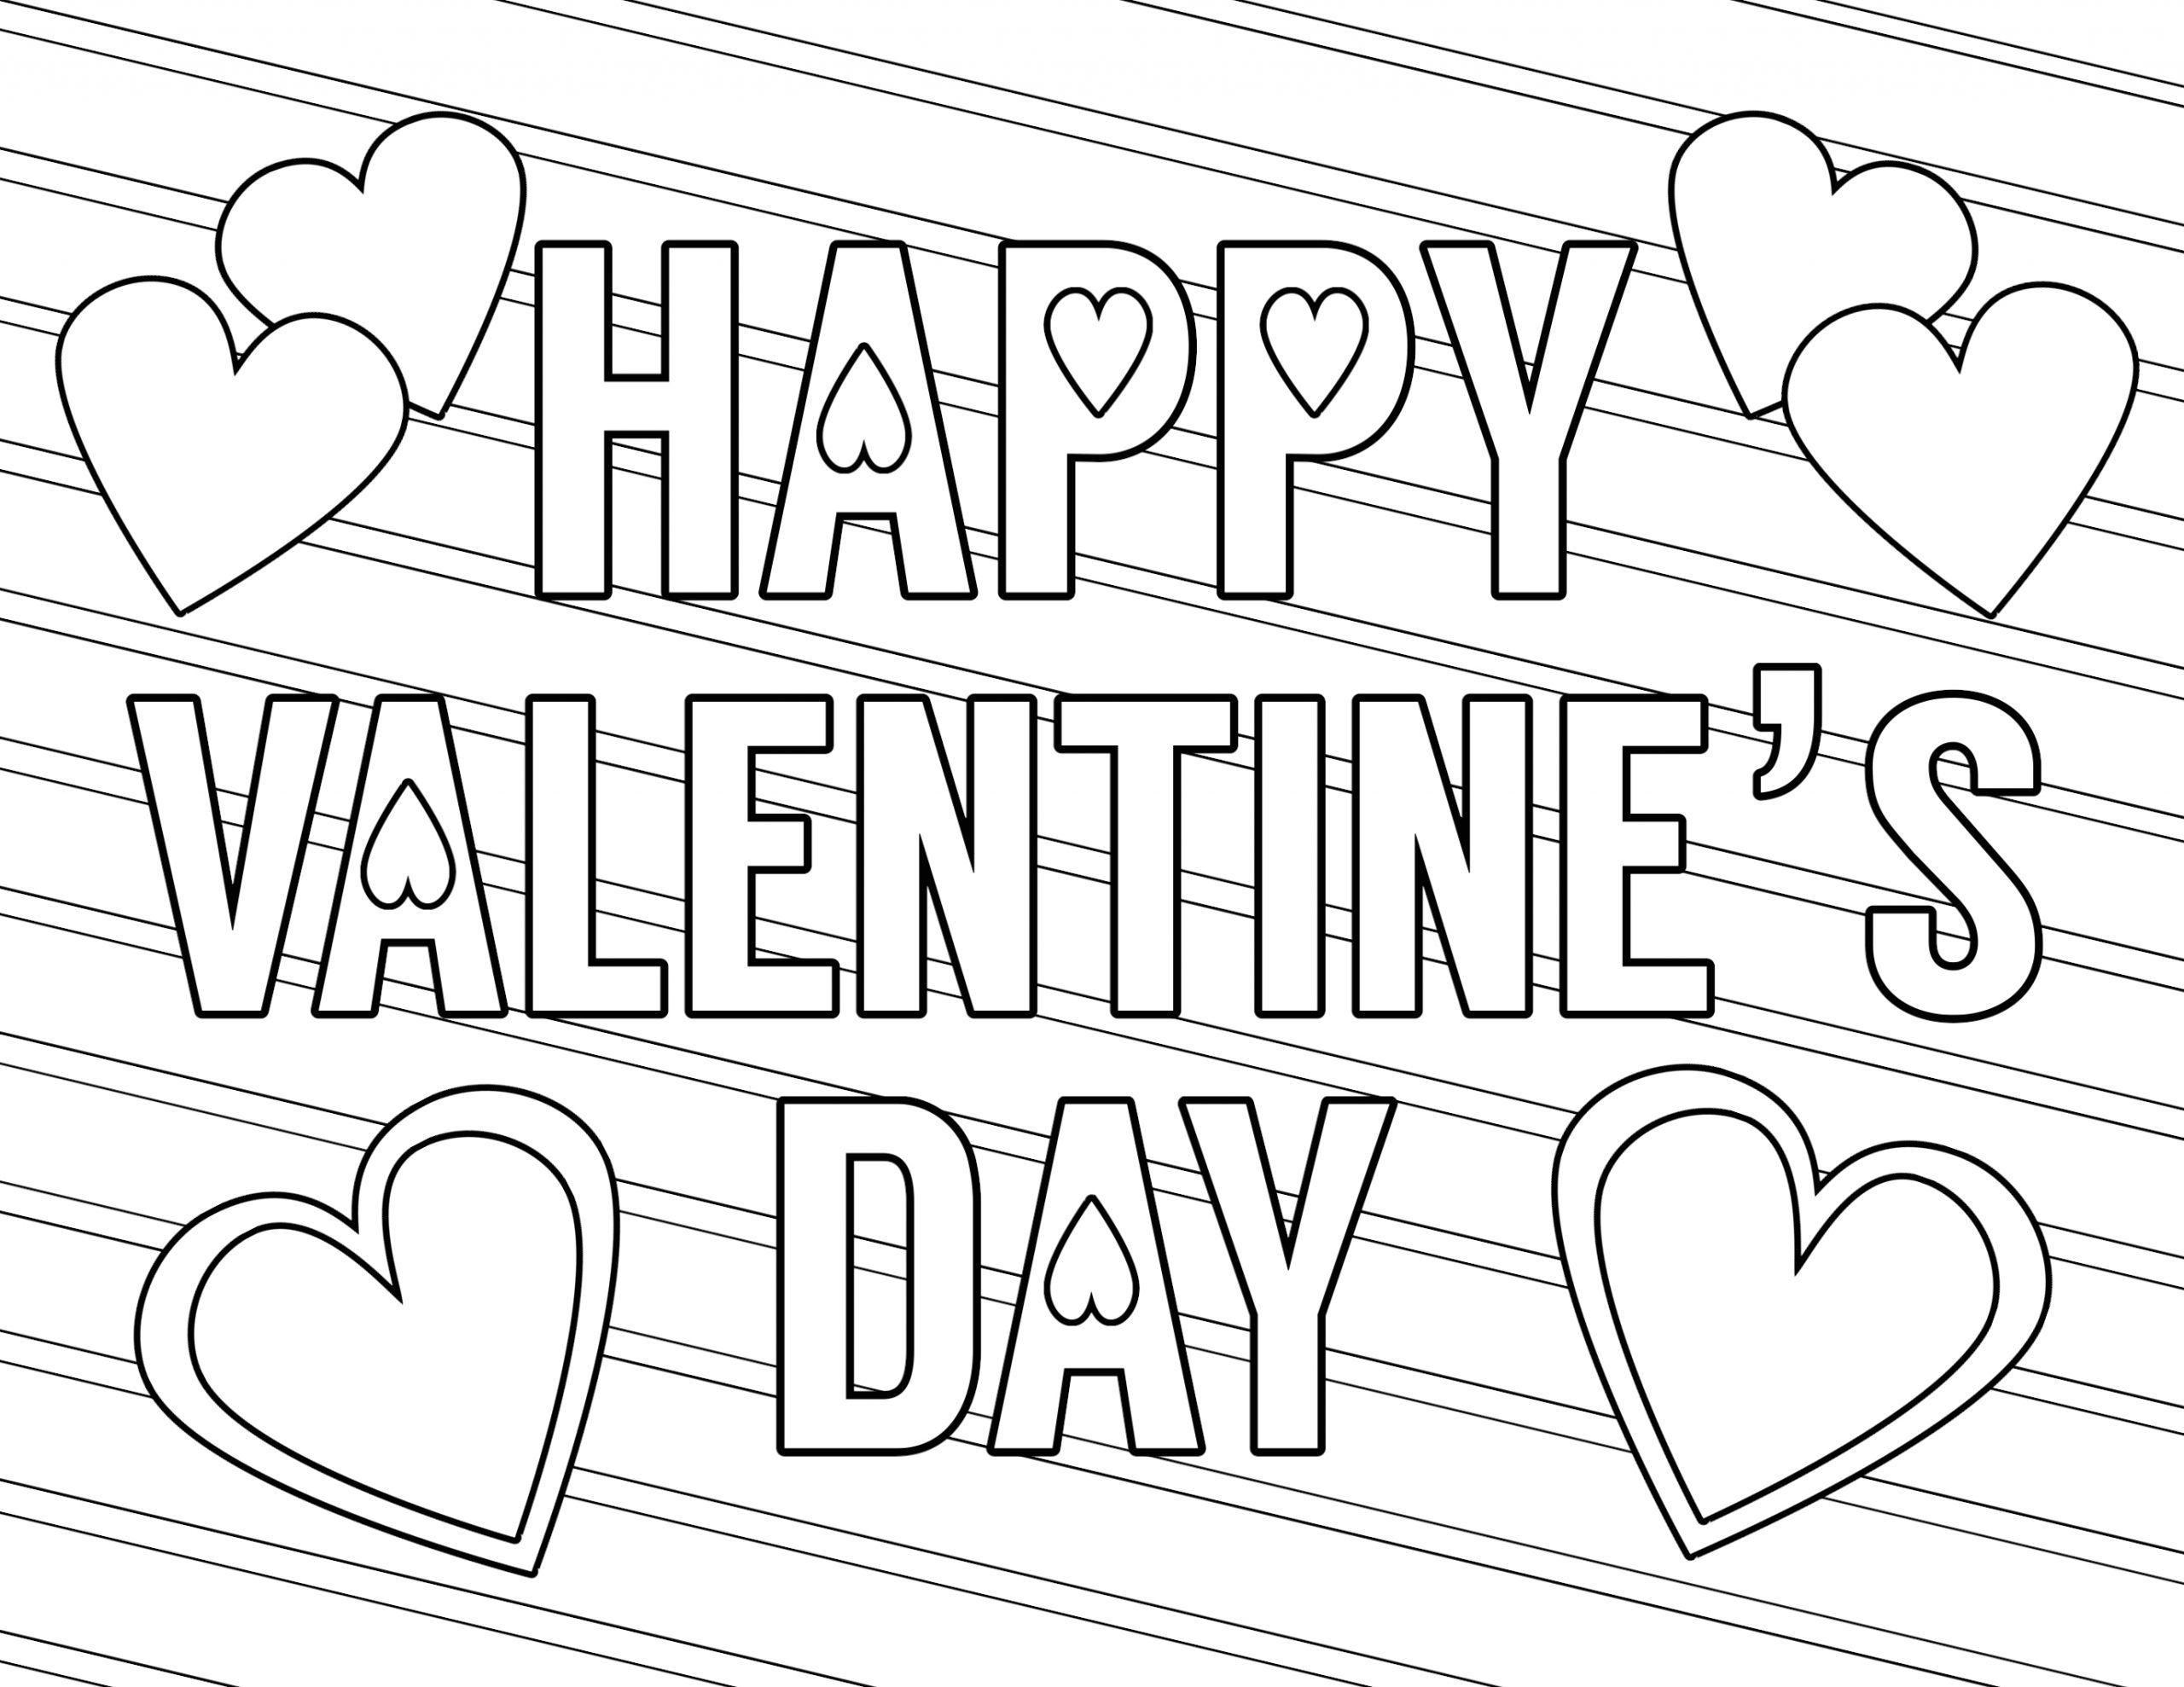 Free Printable Happy Valentines Day Coloring Pages Free Printable Valentine Coloring Pages Paper Trail Design